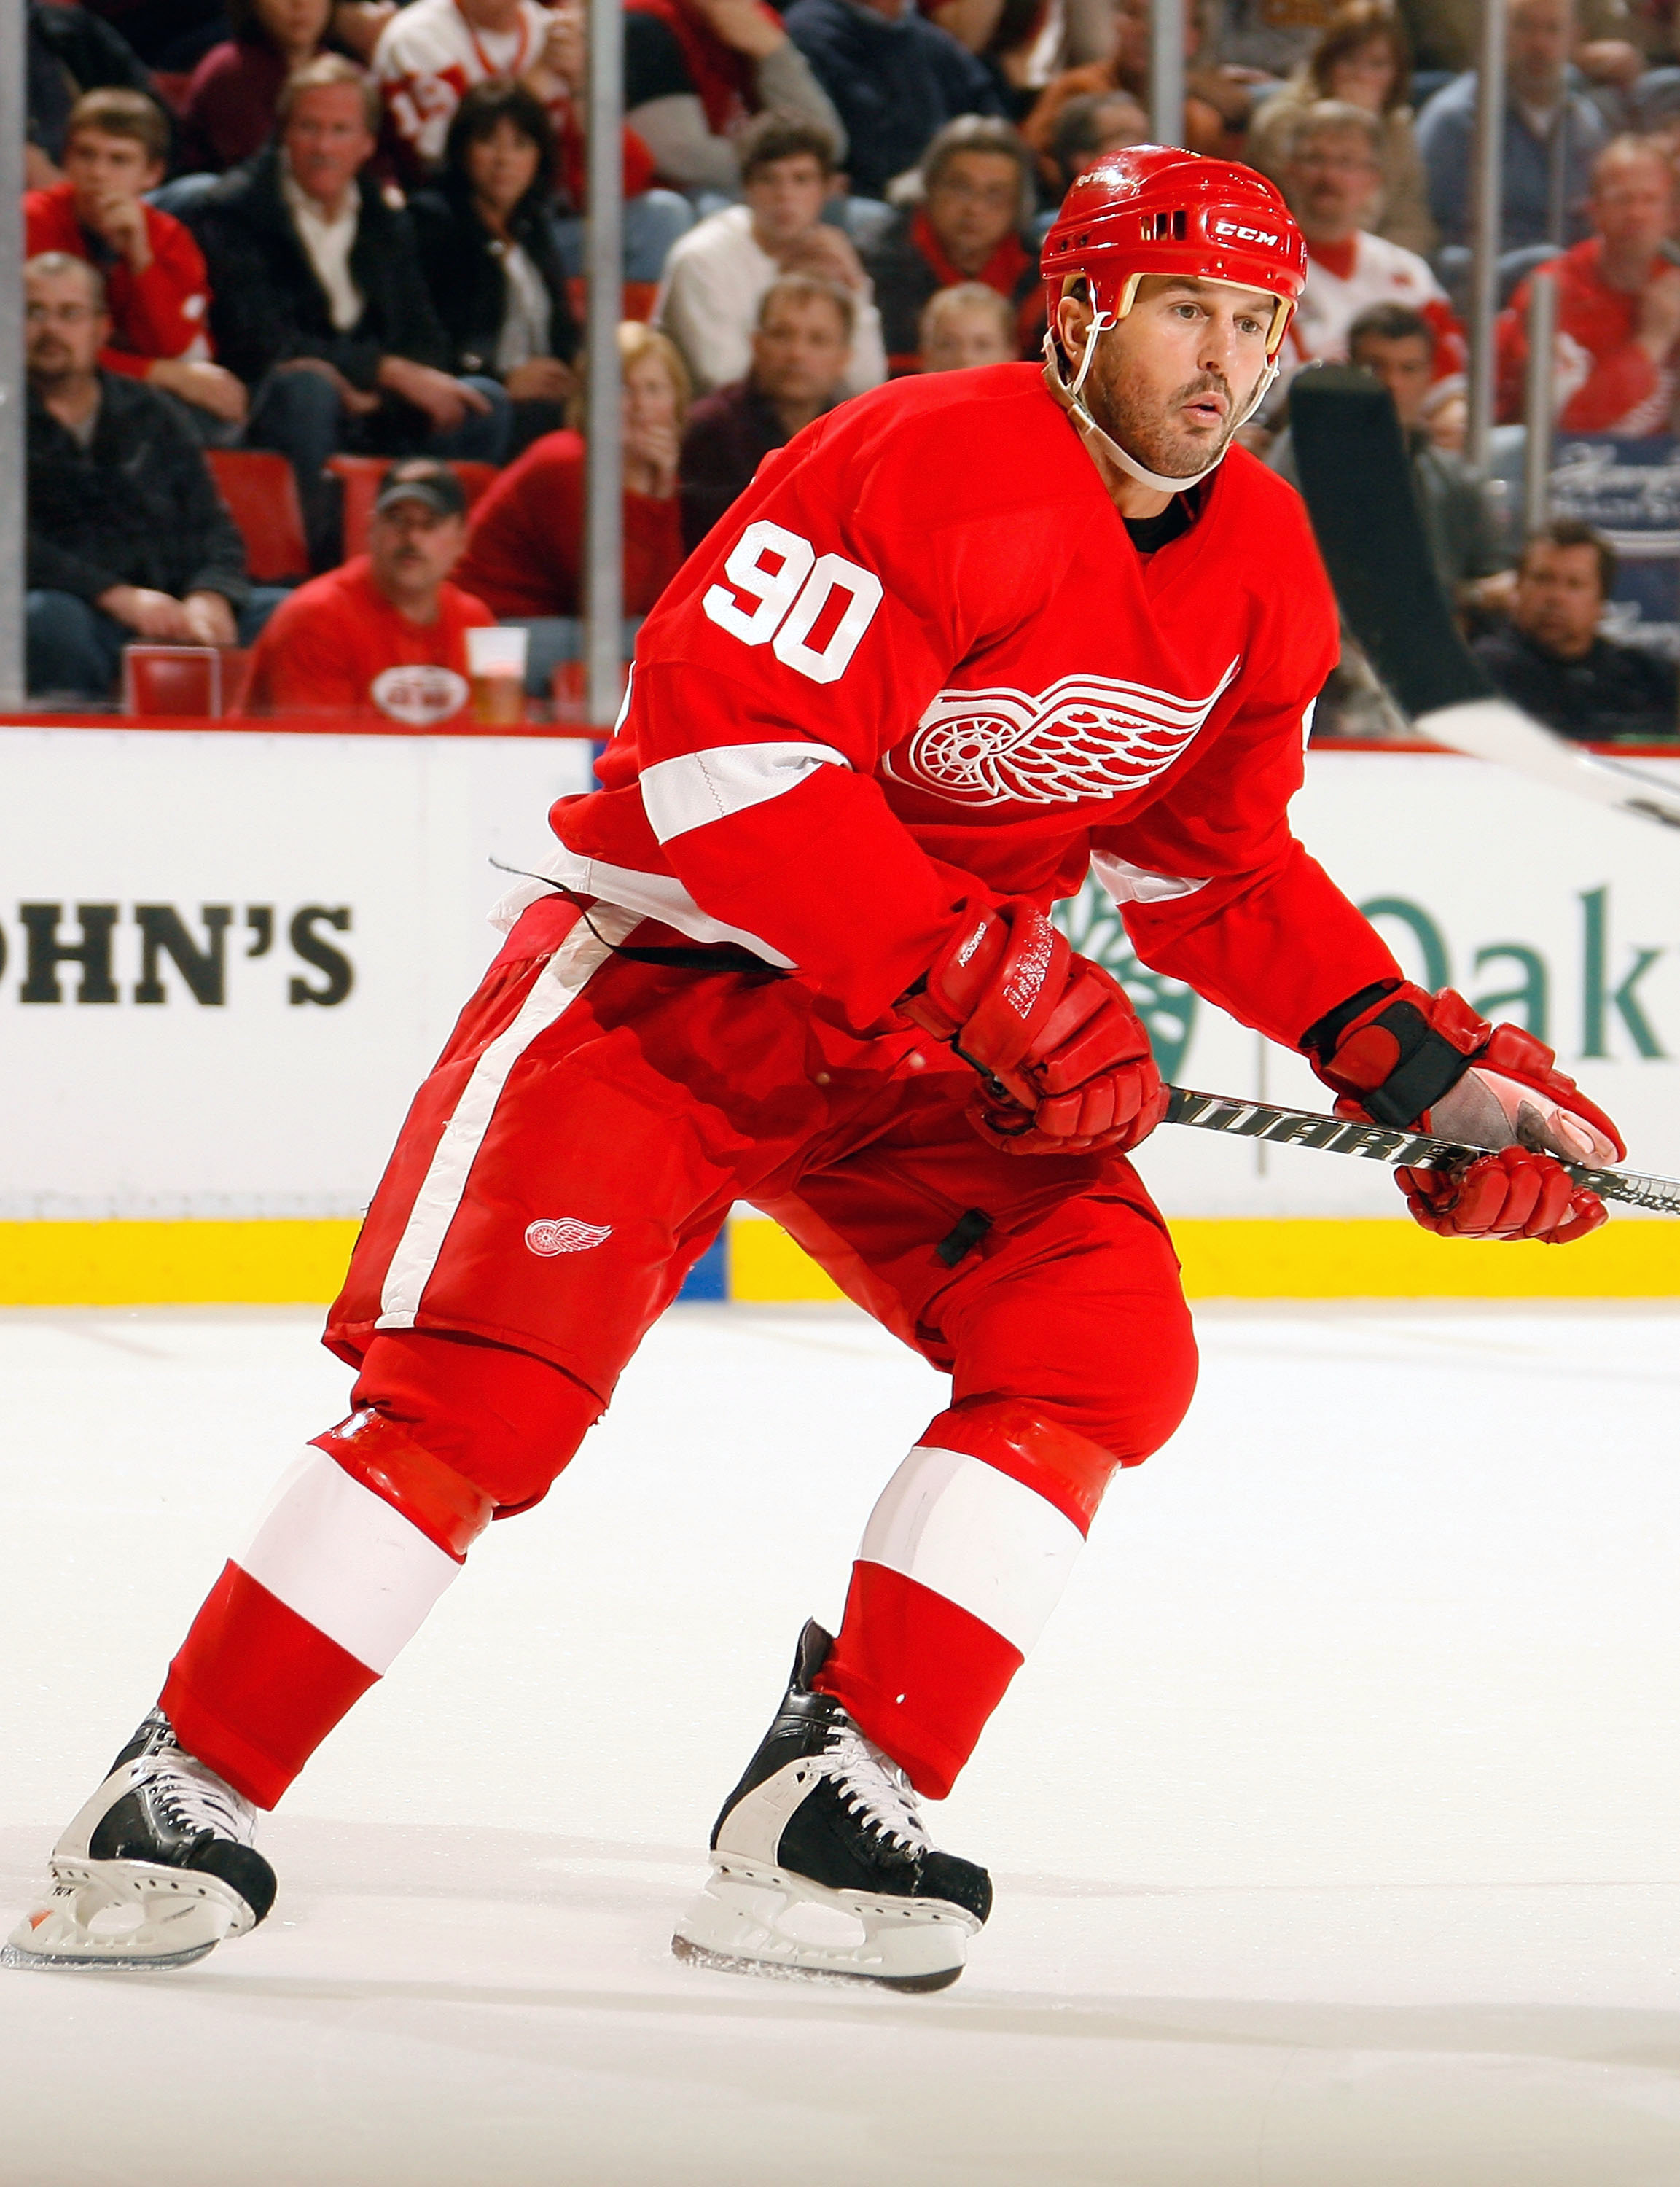 DETROIT, MI - NOVEMBER 21:  Mike Modano #90 of the Detroit Red Wings skates against the Calgary Flames during their NHL game at Joe Louis Arena on November 21, 2010 in Detroit, Michigan.(Photo by Dave Sandford/Getty Images)